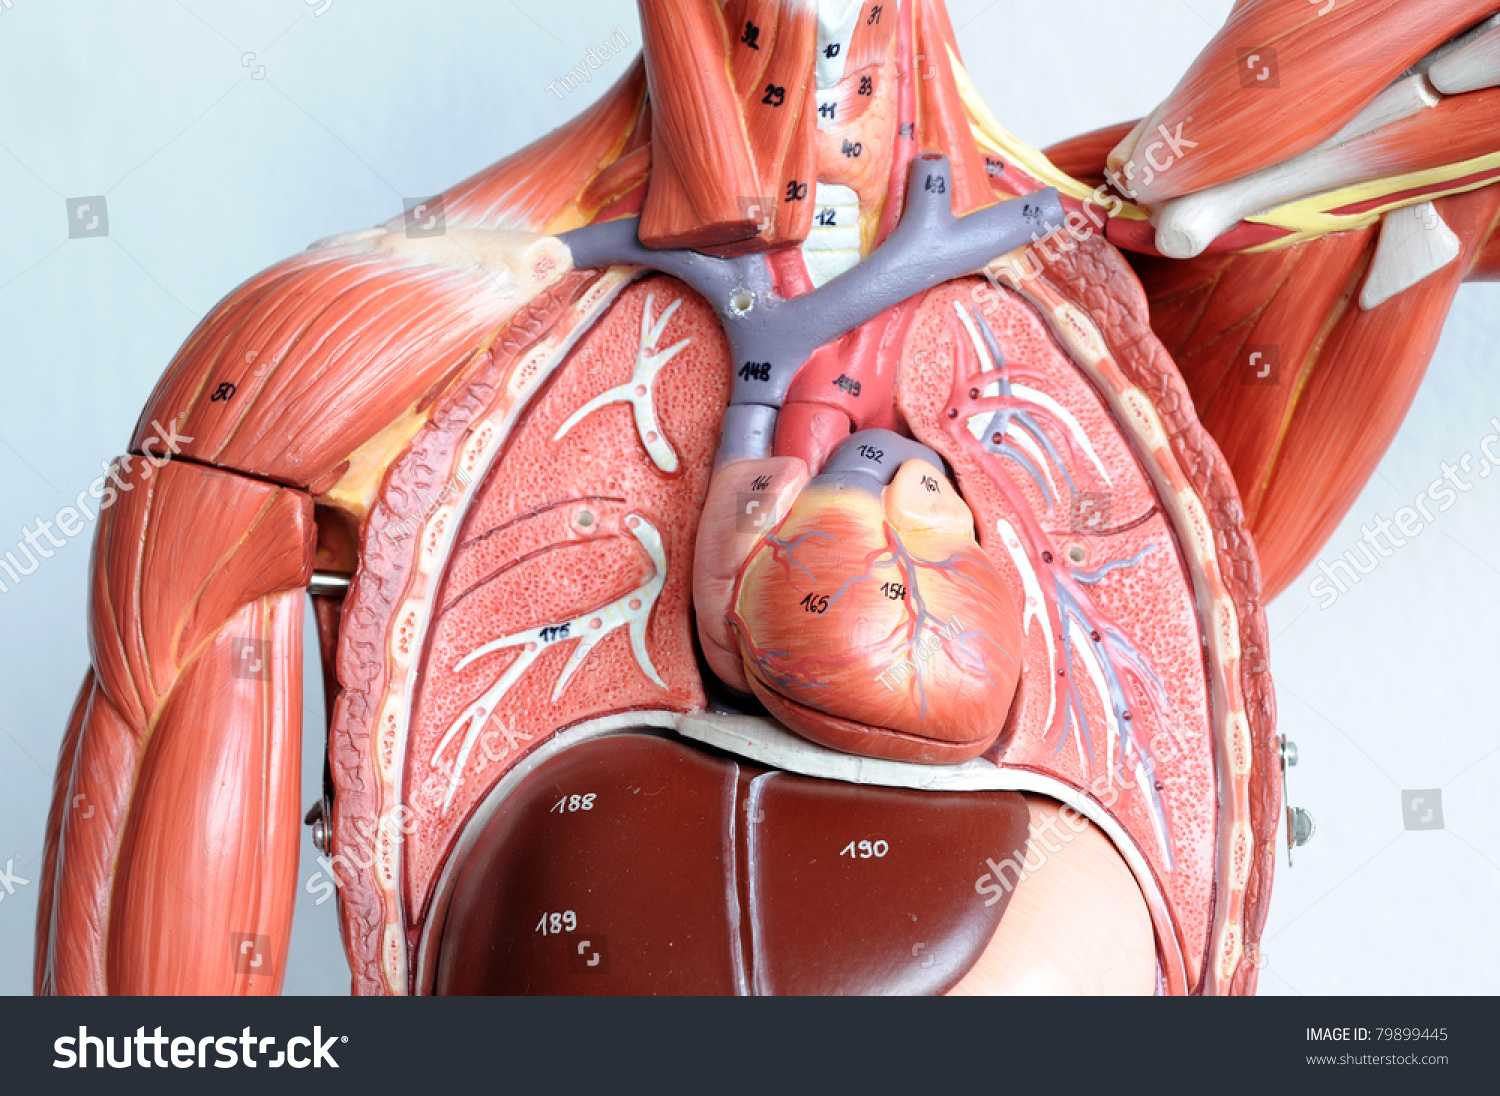 Chest Human Anatomy Stock Photo Royalty Free 79899445 Shutterstock